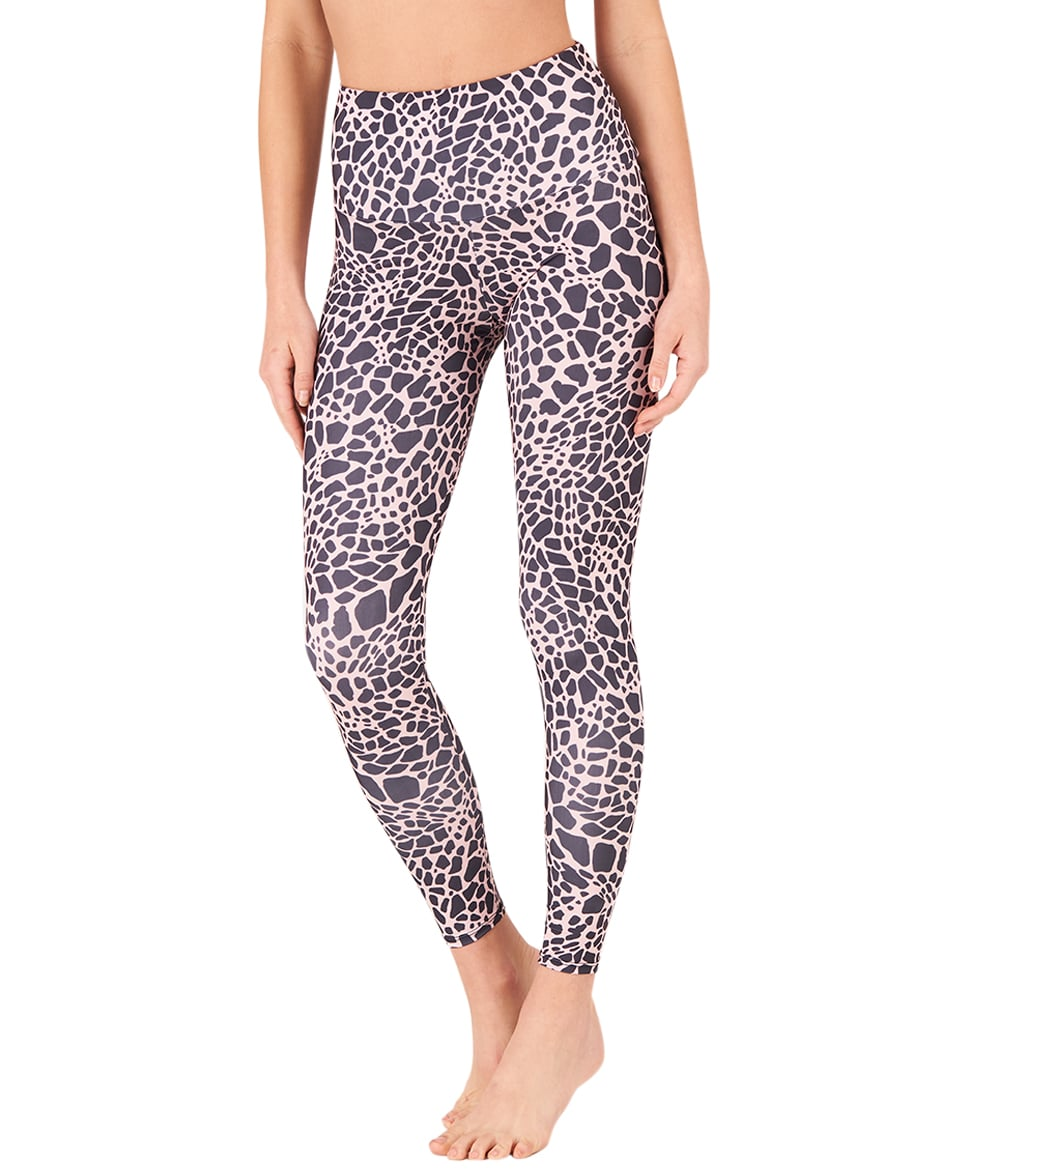 775151329 Onzie High Waisted Basic 7 8 Yoga Leggings at YogaOutlet.com - Free ...